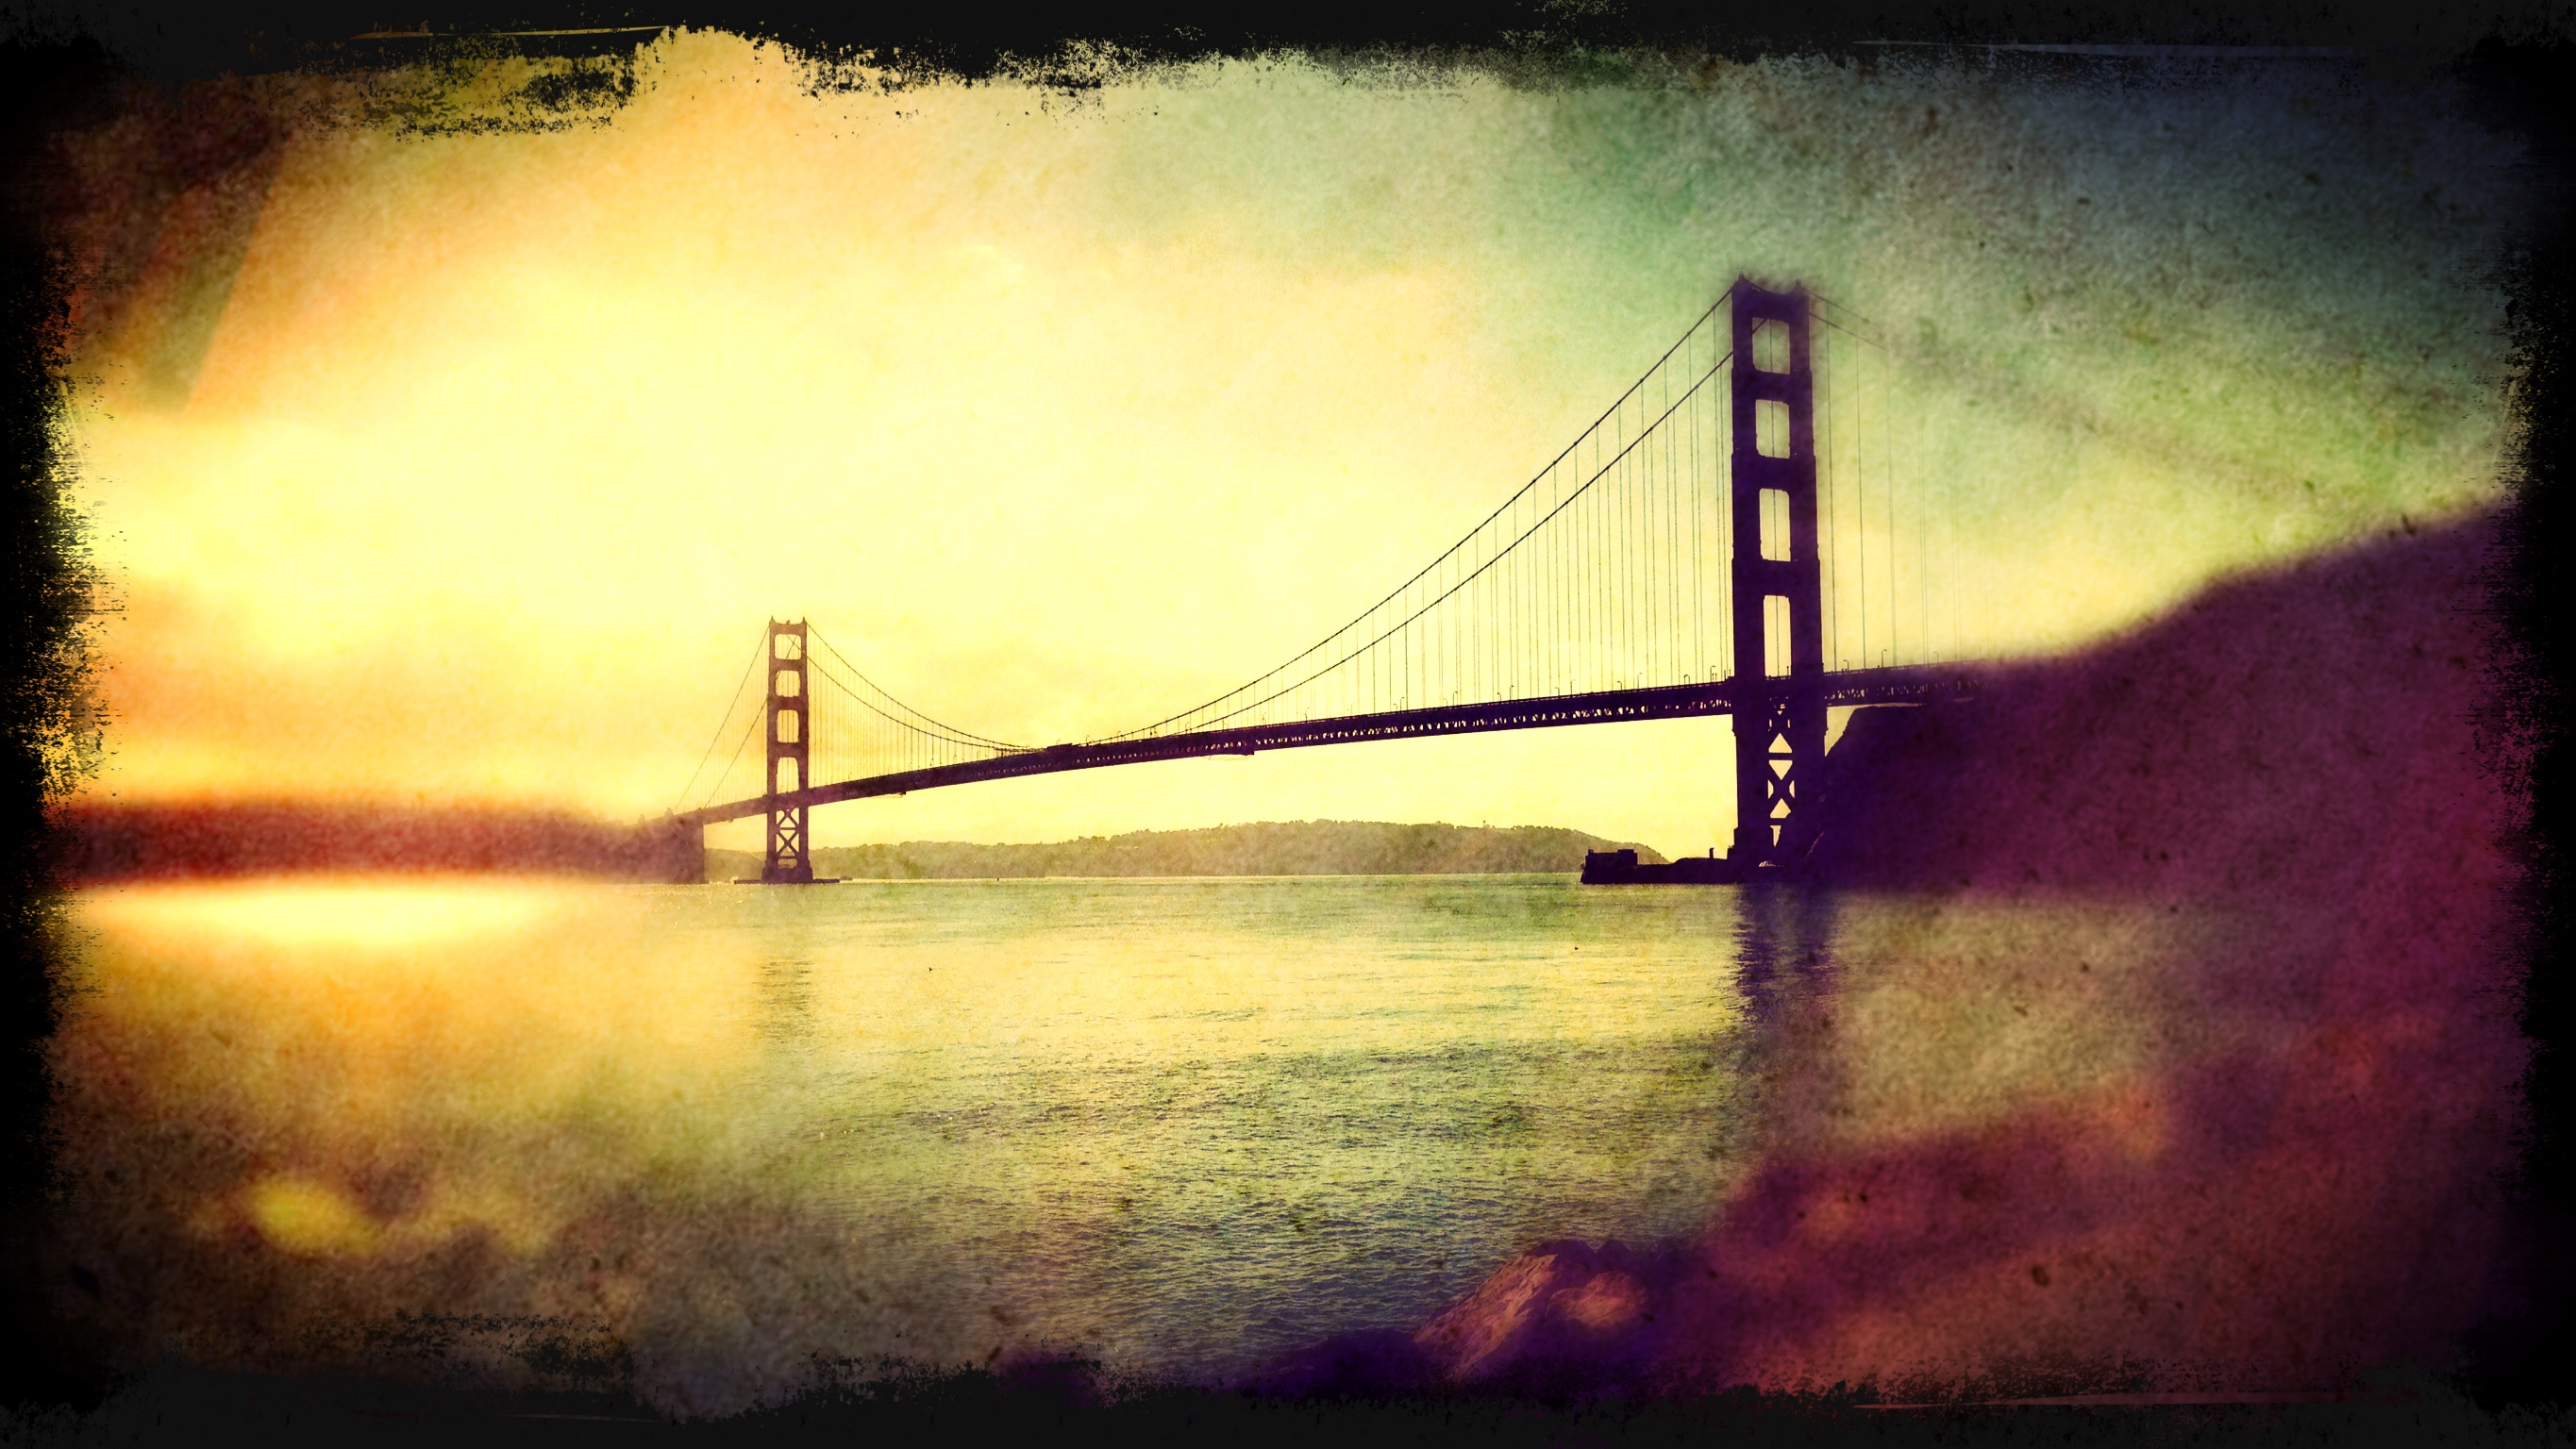 Golden Gate Bridge edited in Photoforge2